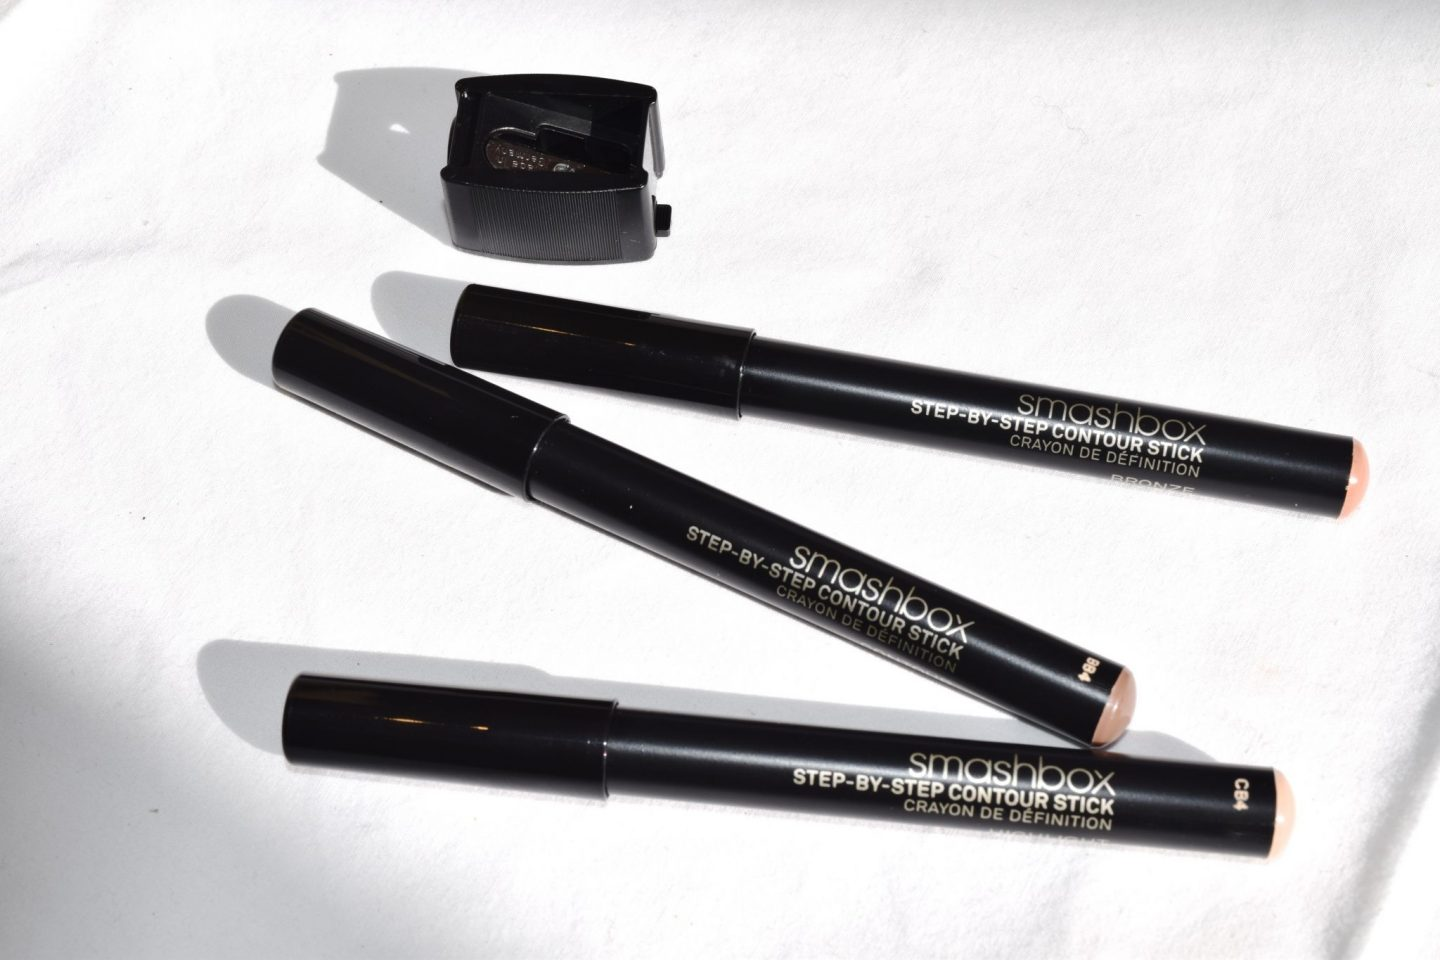 Smashbox Contour Stick Trio 1